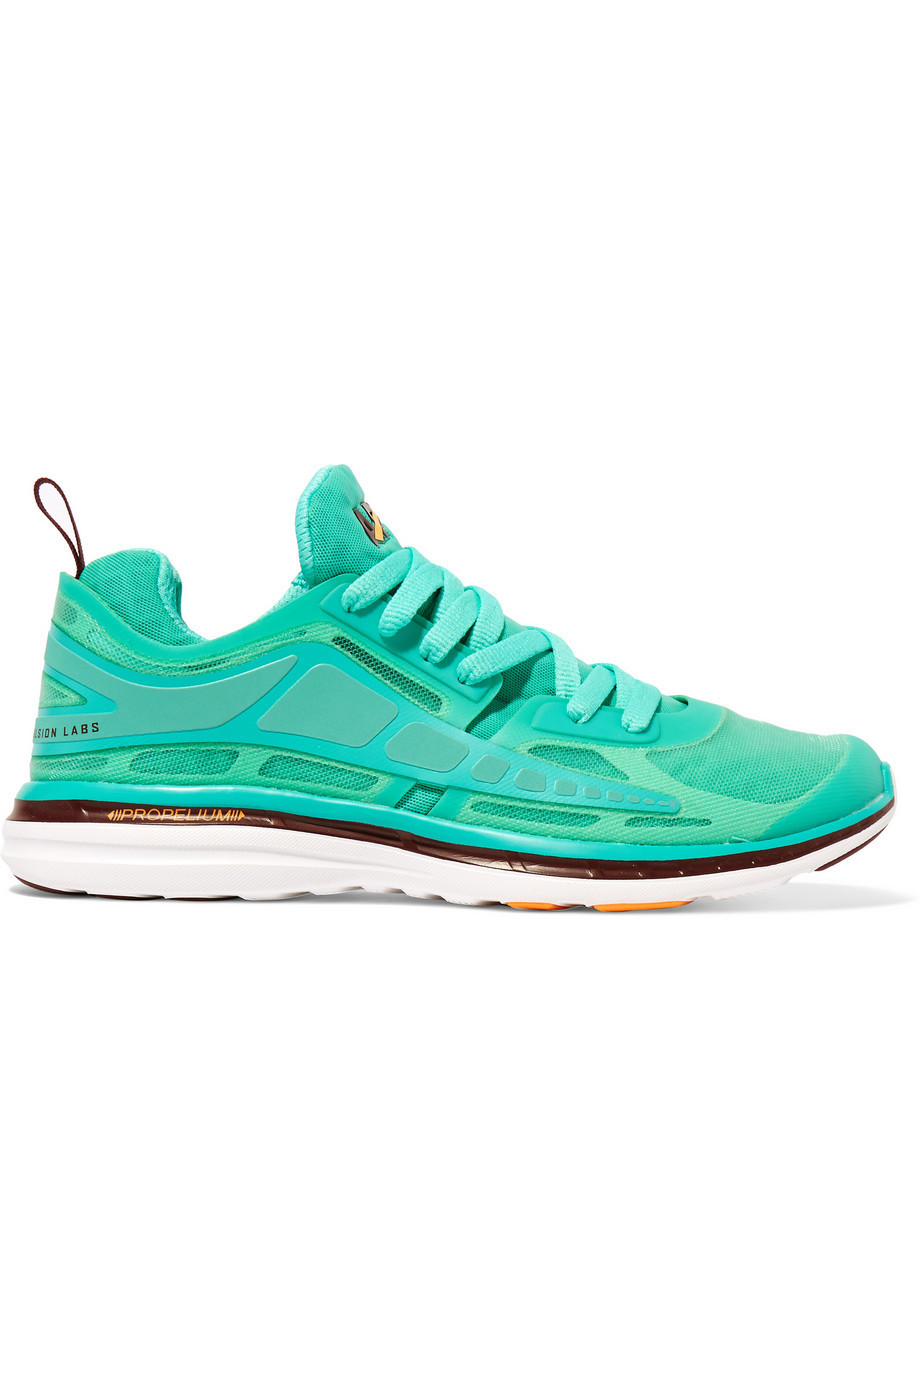 meet 655de 8a376 Athletic Propulsion Labs Prism Mesh and Rubber Sneakers in mint